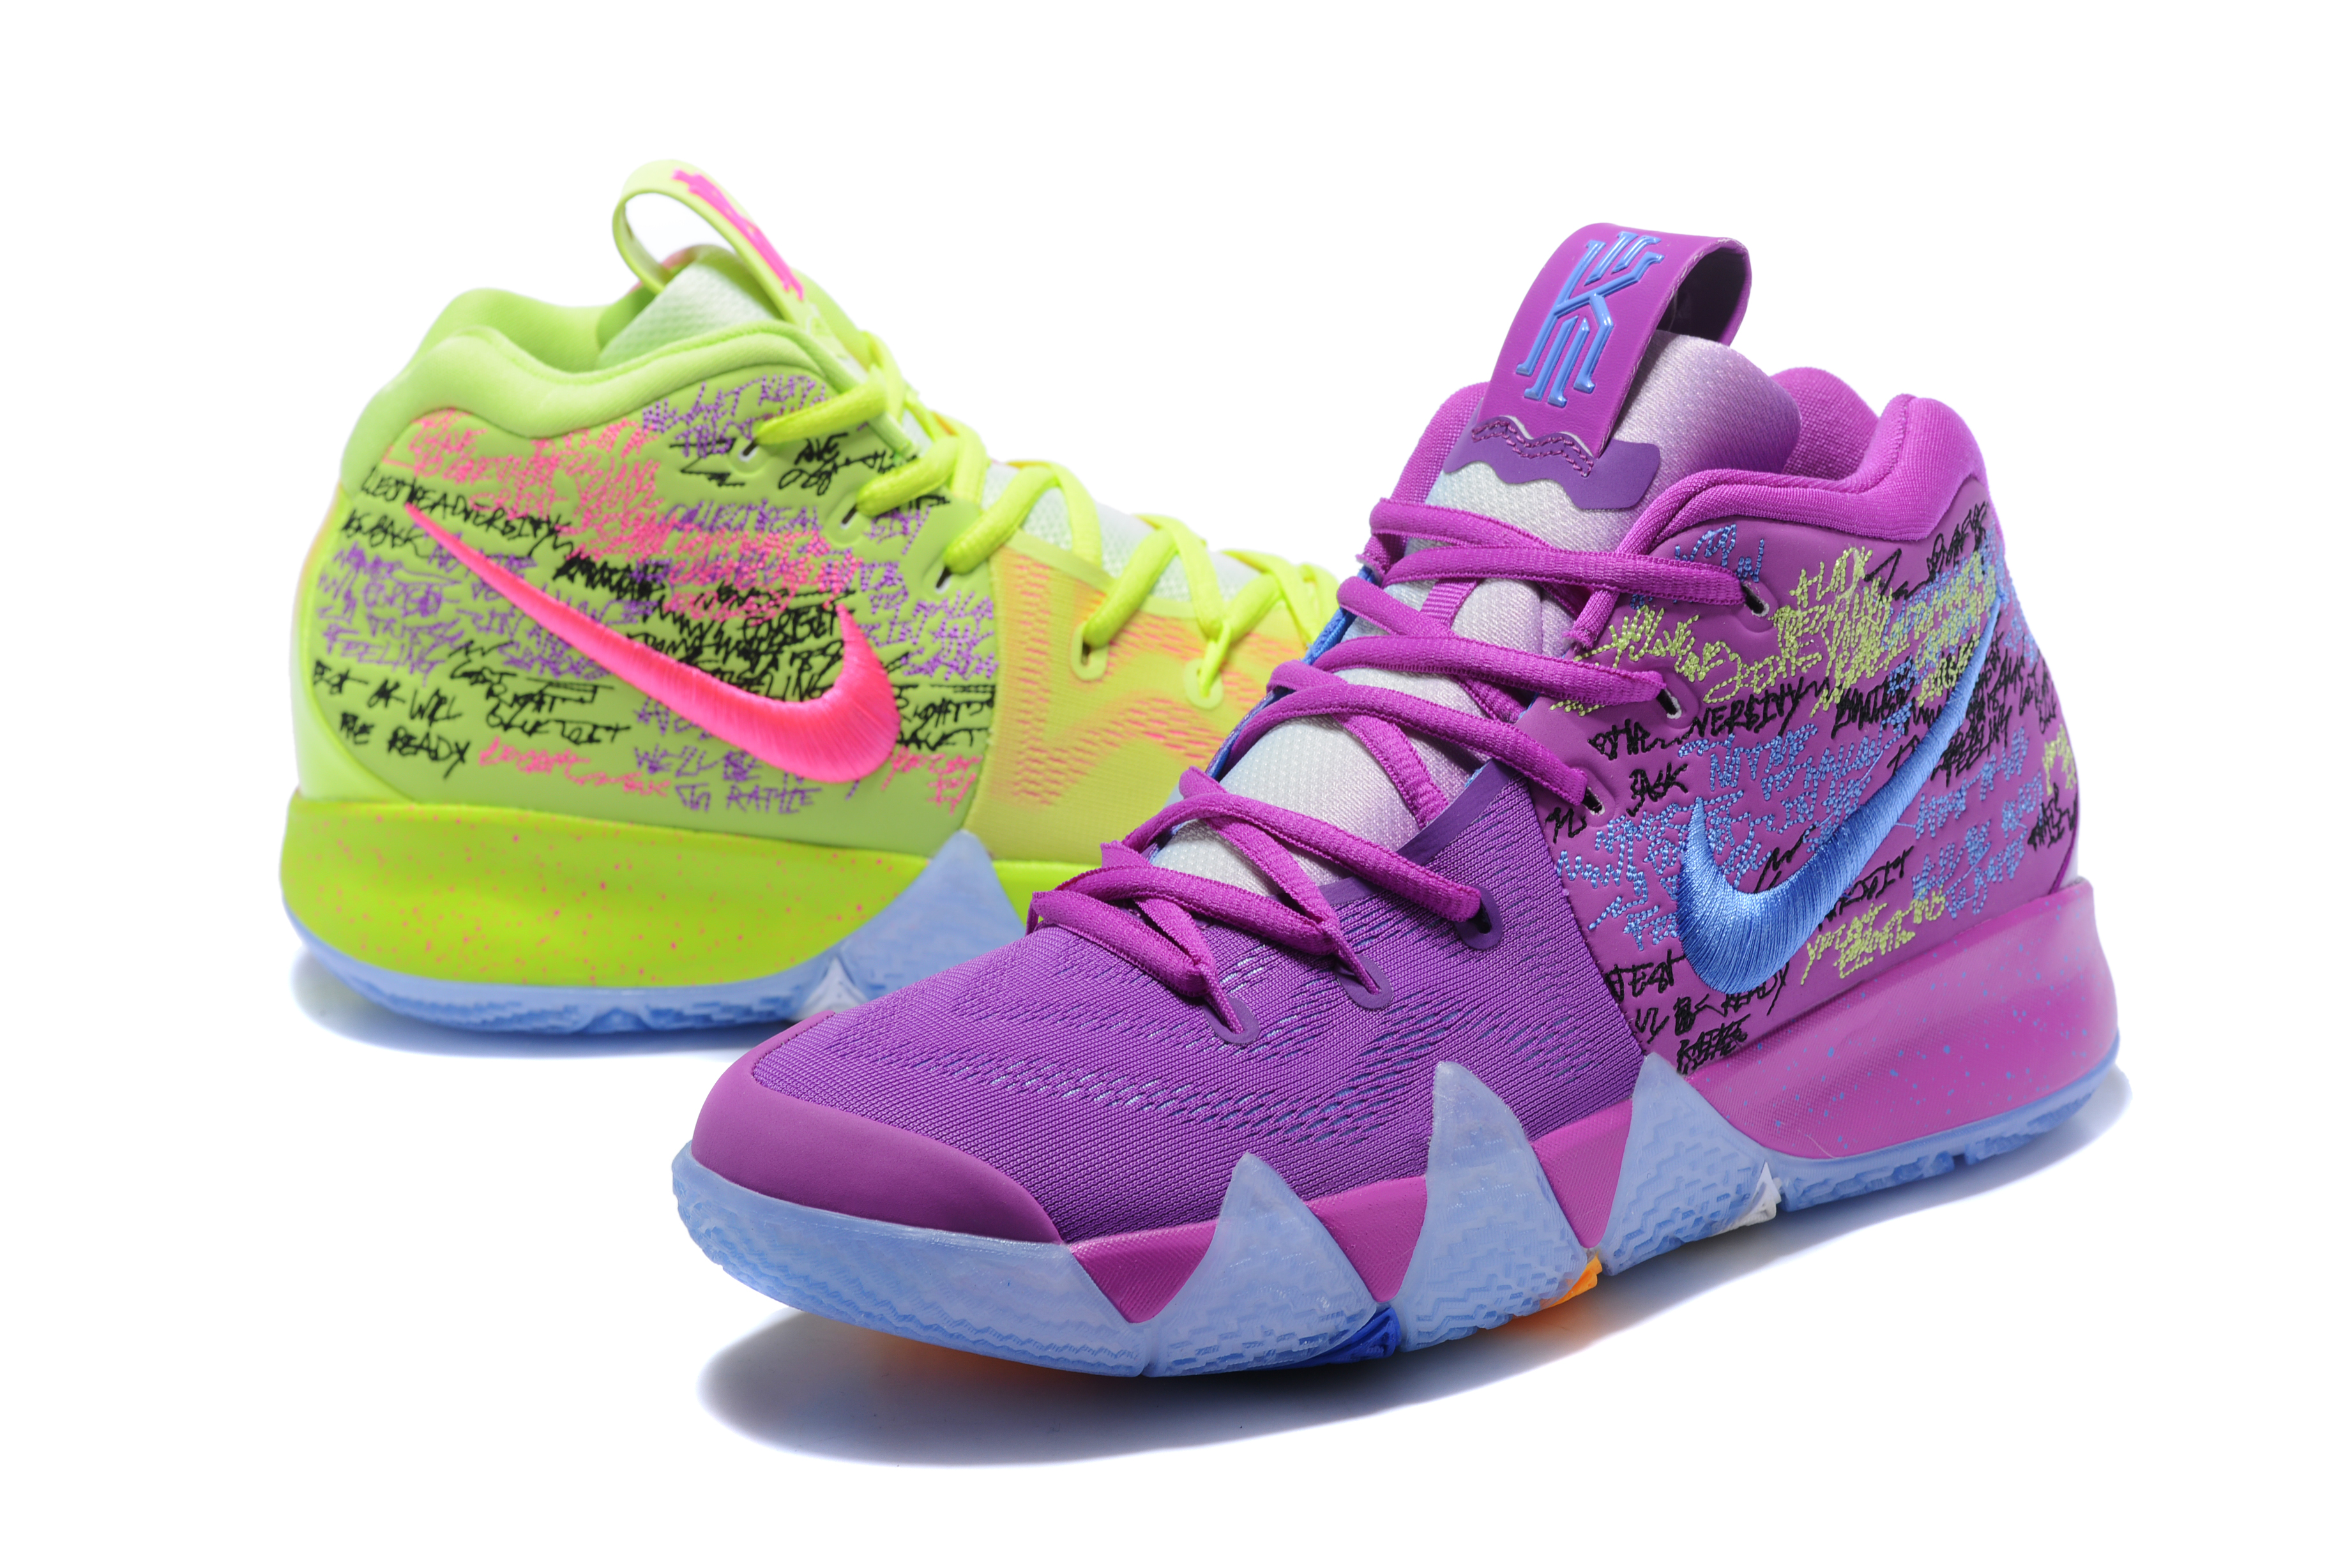 2017 Nike Kyrie 4 Colorful Purple Mandrian Ducks Basketball Shoes